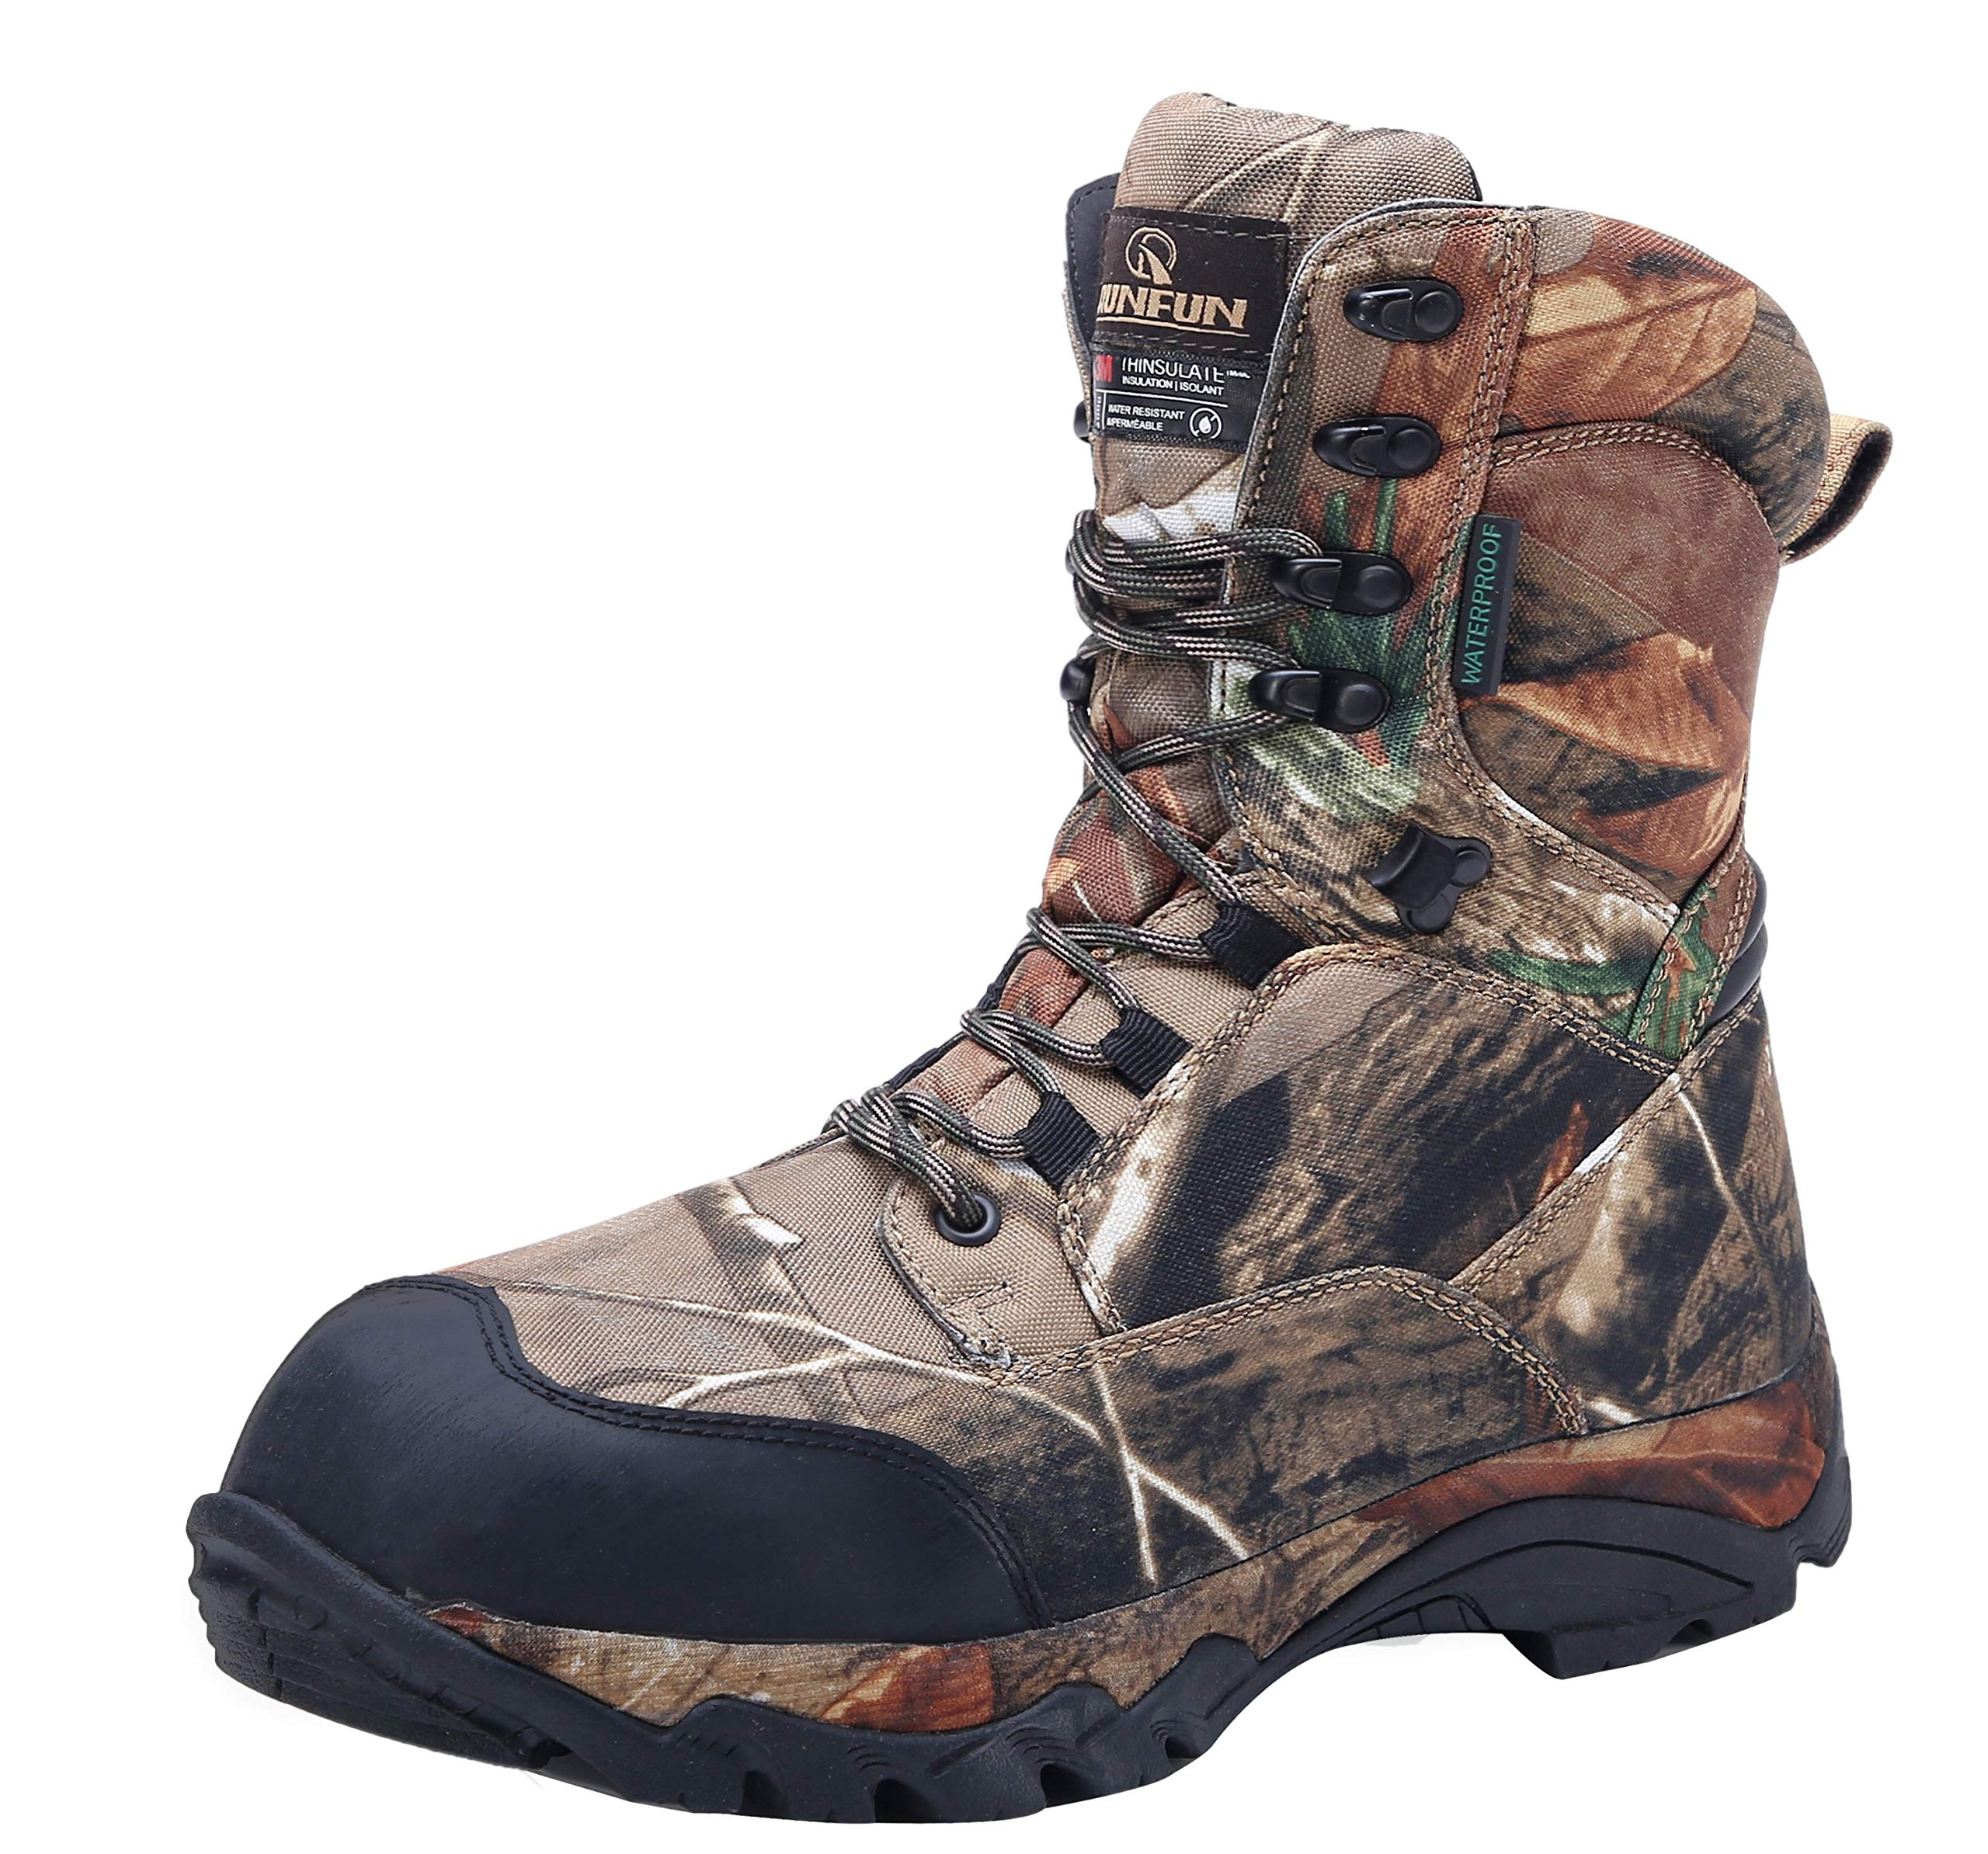 R RUNFUN Men's camo Waterproof Lightweight Hunting Boots by R RUNFUN